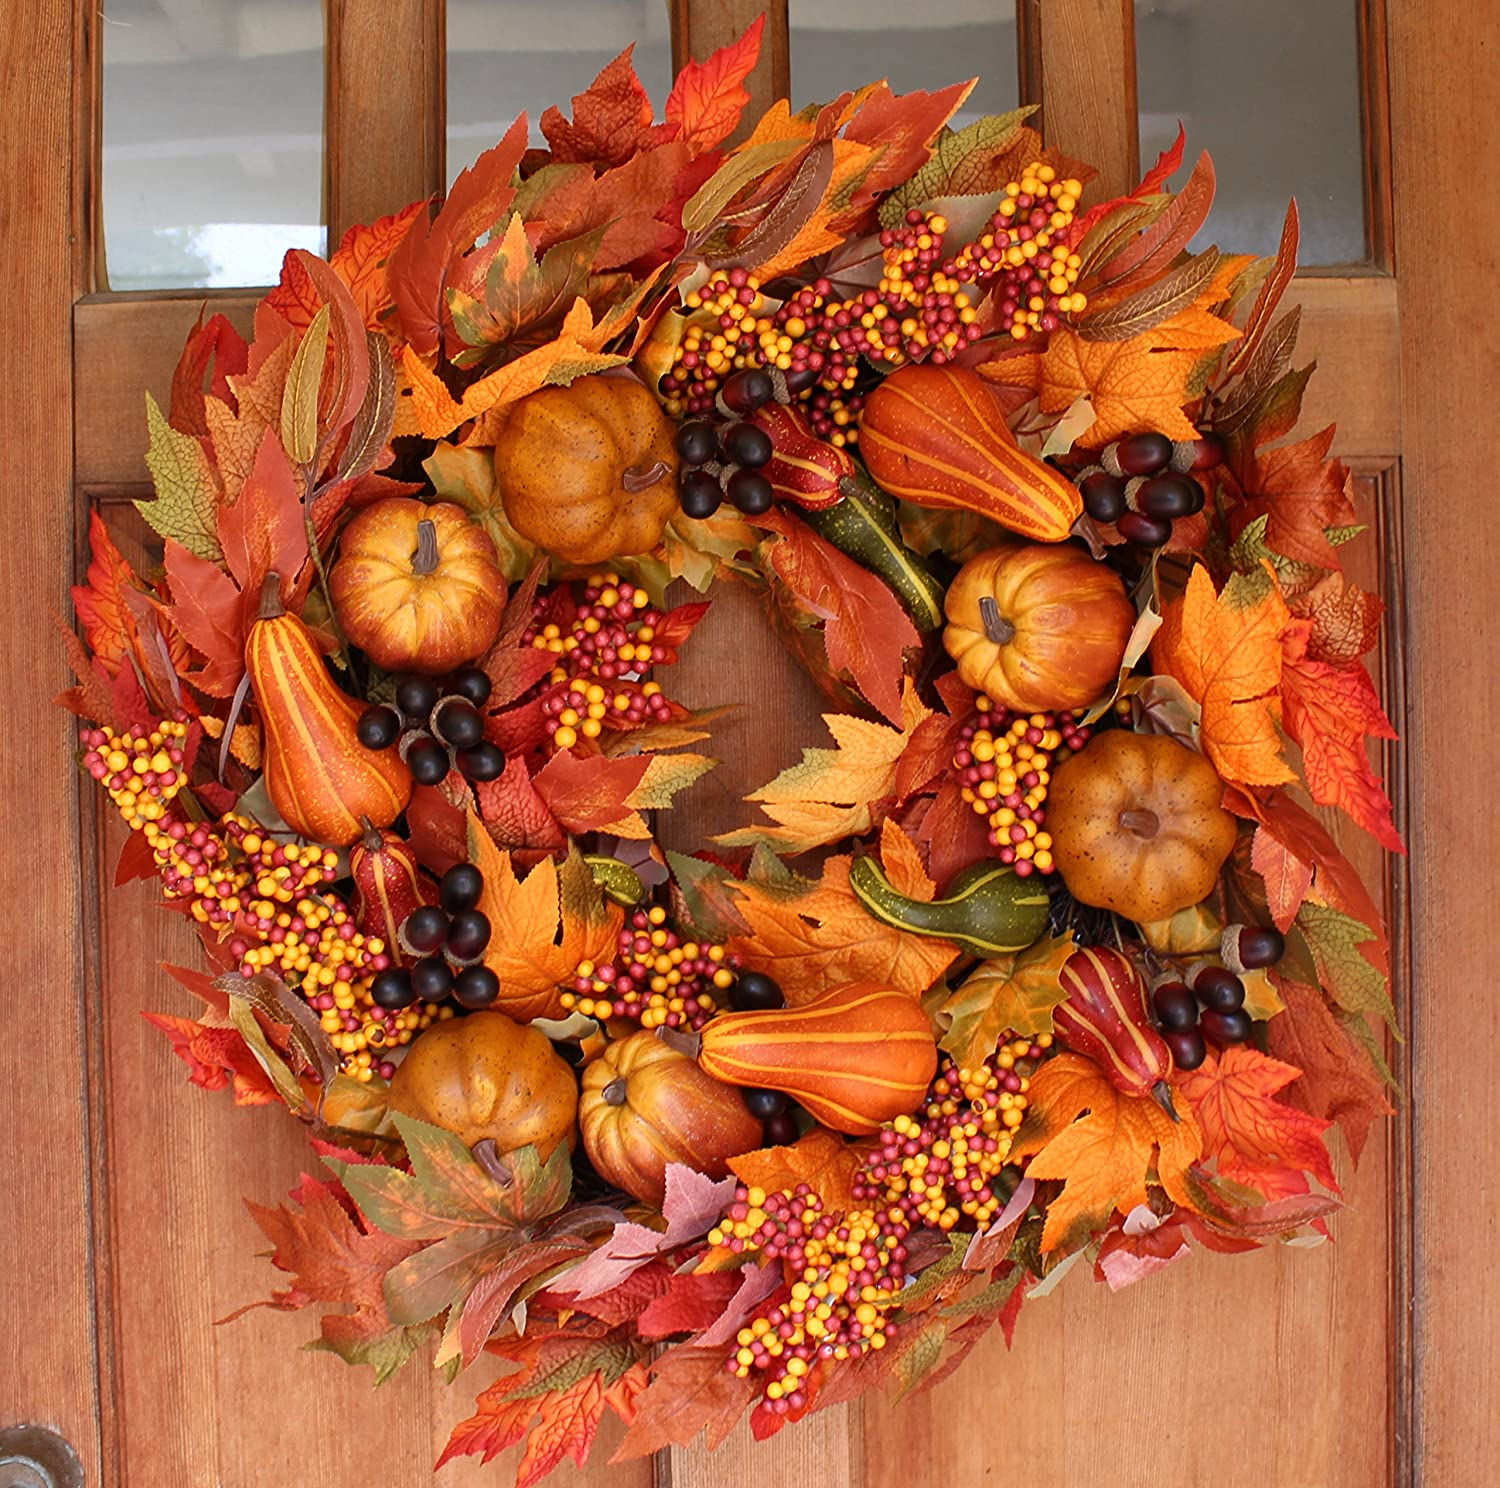 Orange Pumpkin Fall Harvest Silk Autumn Front Door Wreath